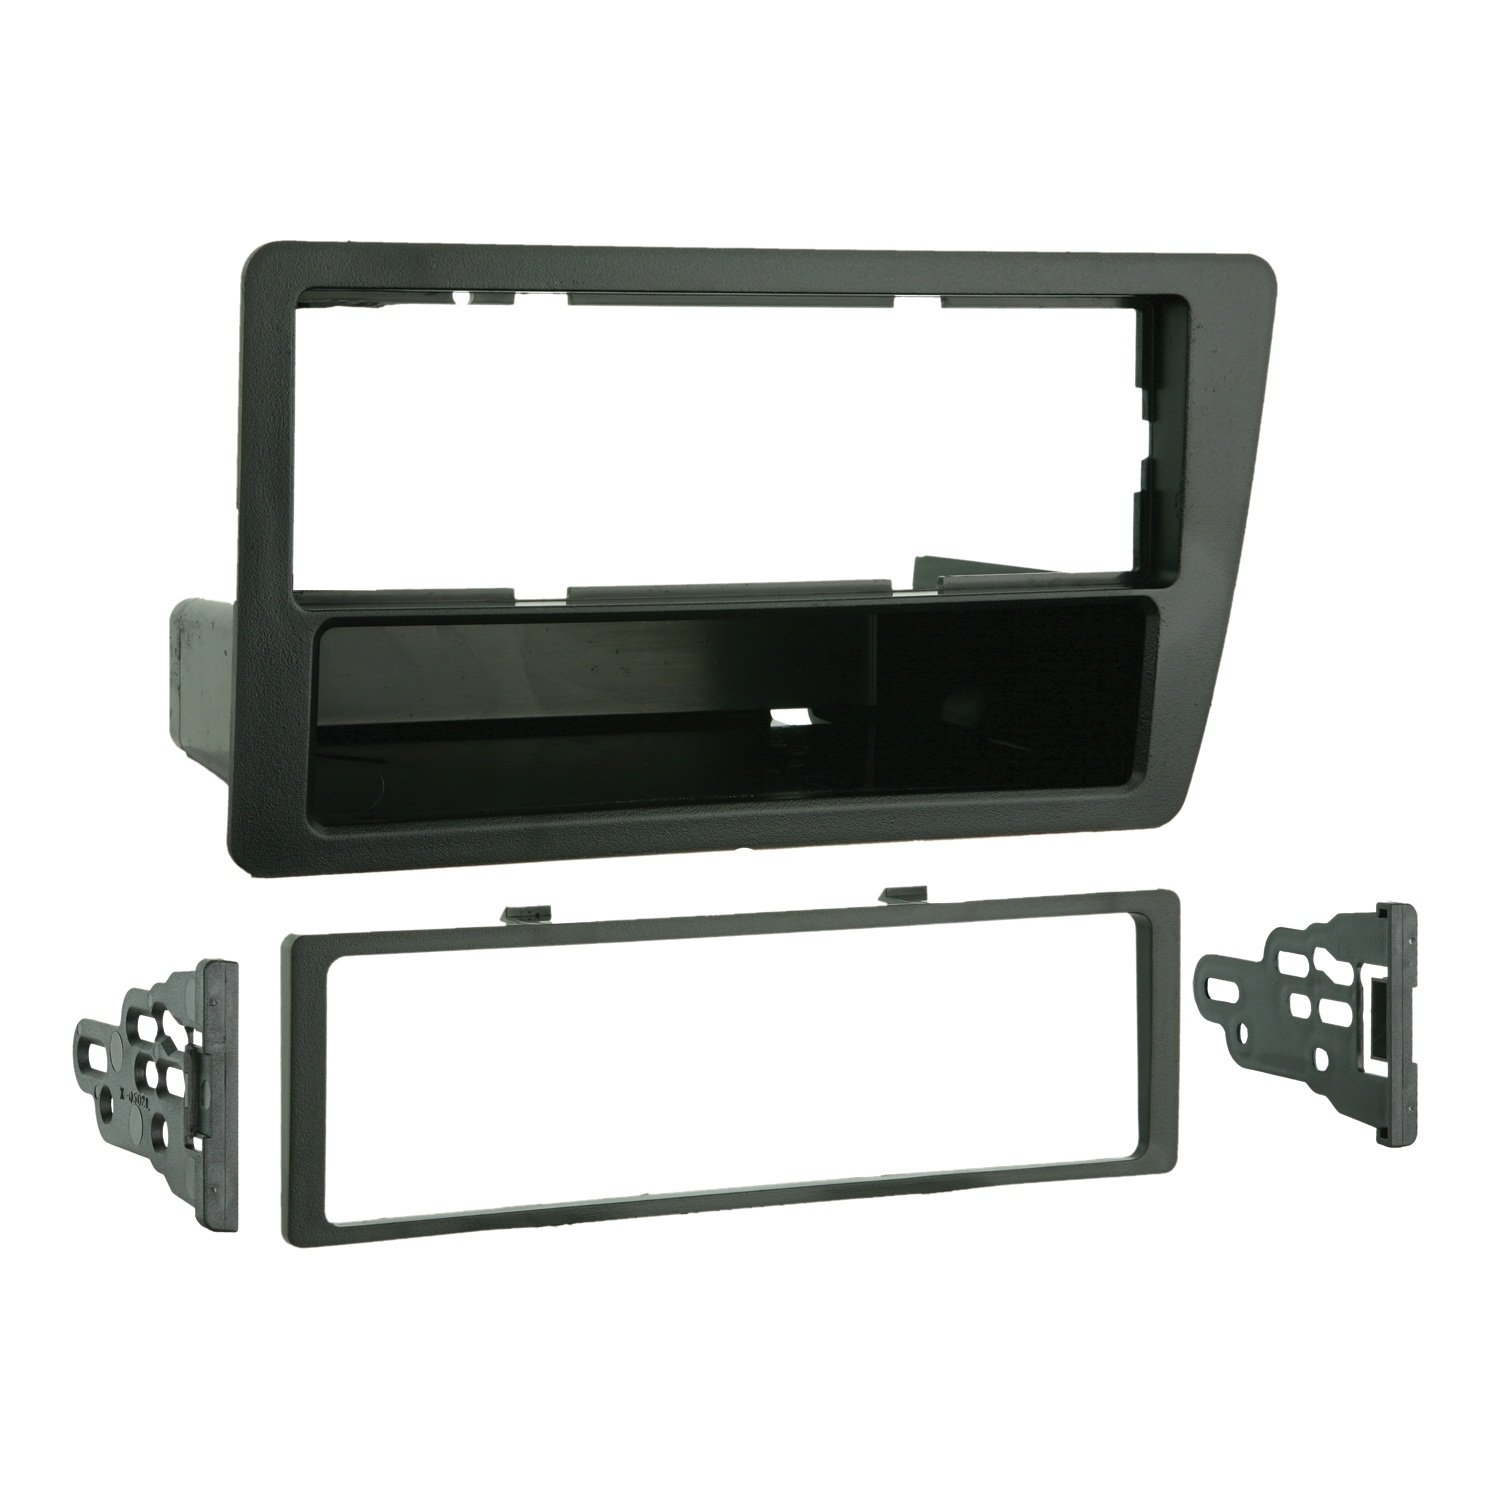 Amazon.com : Metra 99-7899 Dash Kit For Honda Civic 01-05 : Vehicle Receiver Universal Mounting Kits